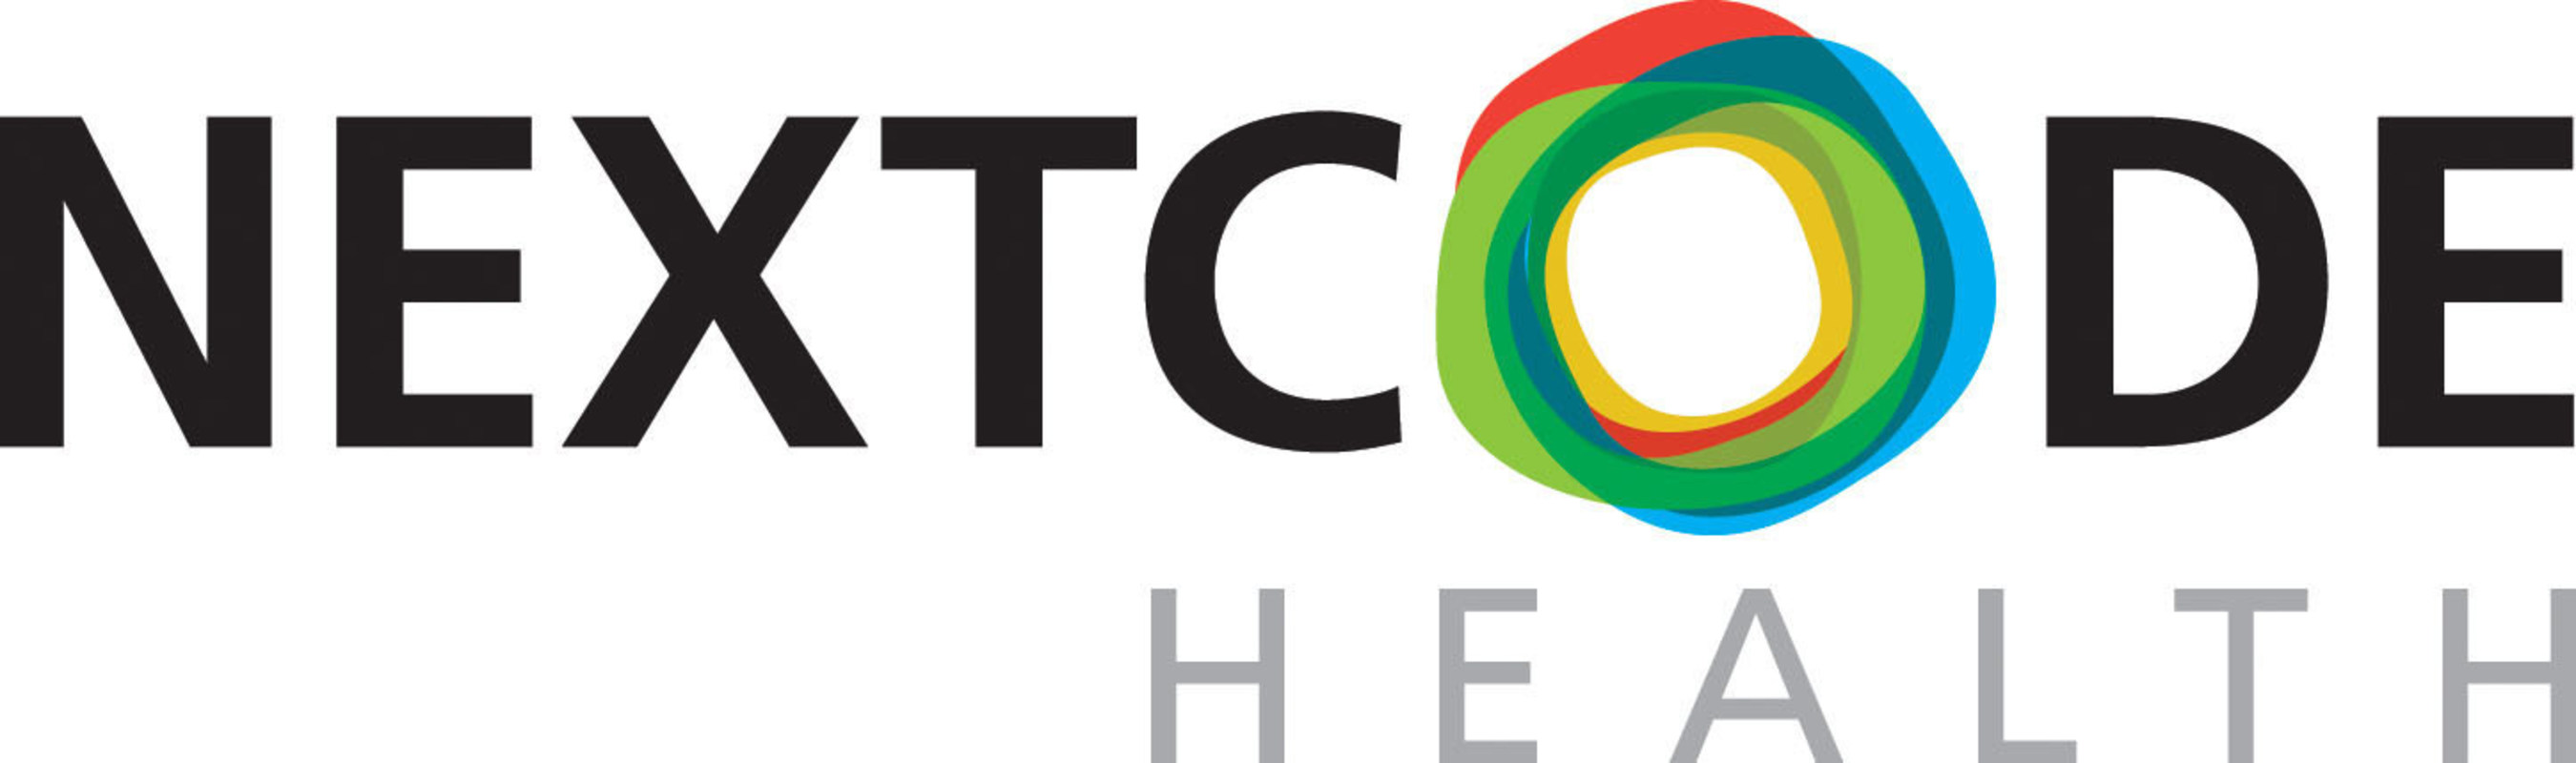 NextCODE puts the world's most proven sequence analysis platform in the hands of clinicians and researchers around the globe, enabling them to use the full power of the genome to better diagnose and treat disease